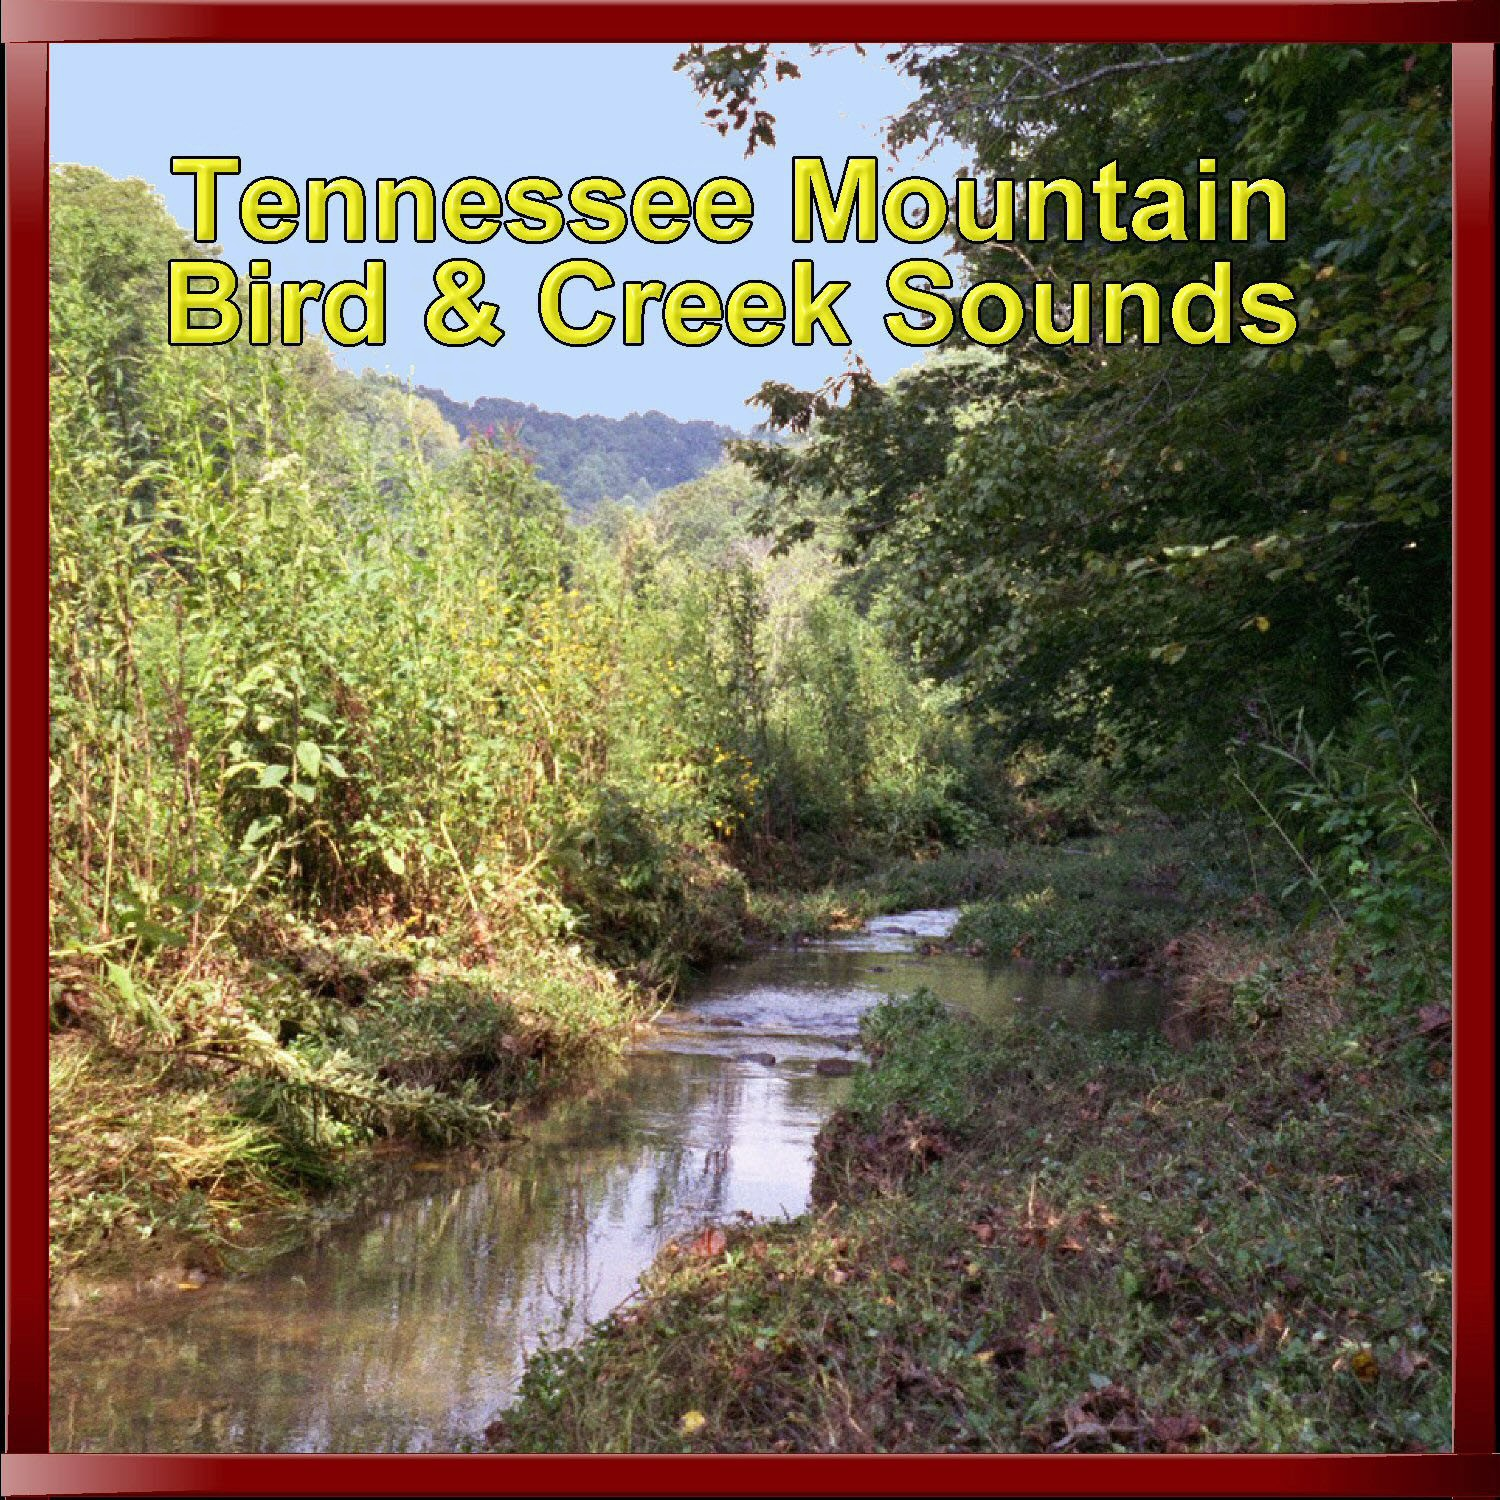 Tennessee Mountain Bird & Creek Sounds CD